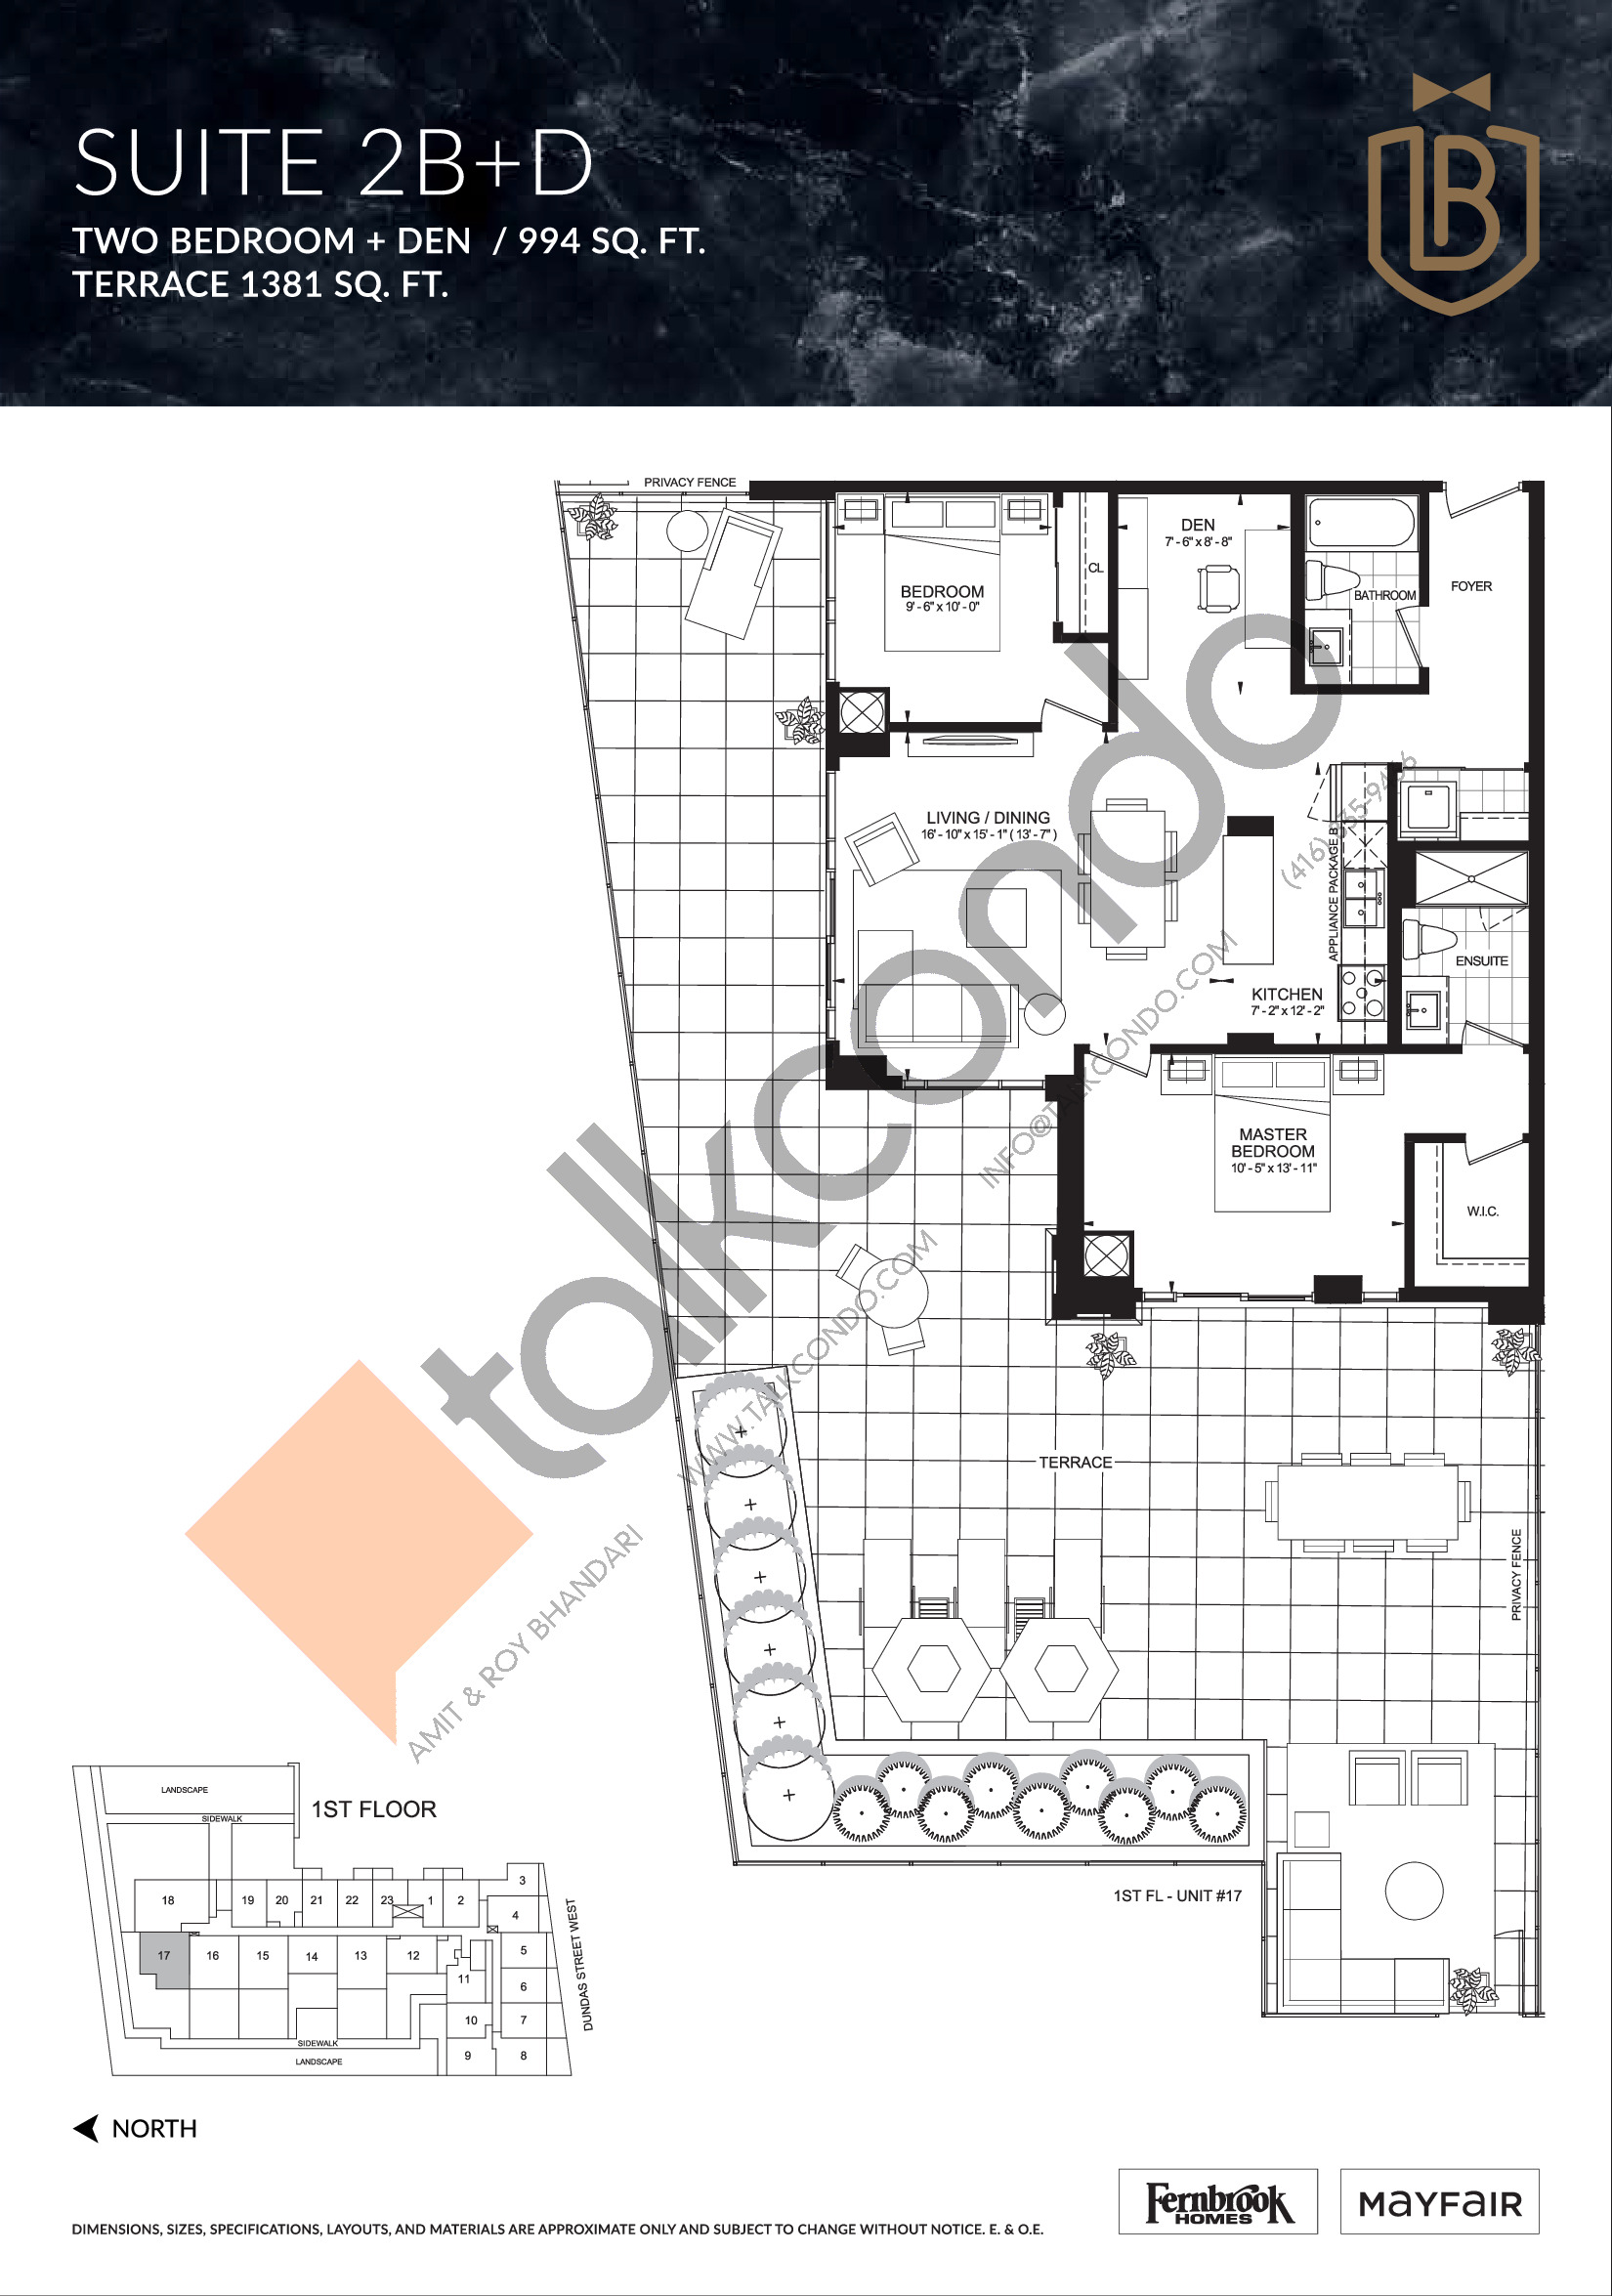 Suite 2B+D (Terrace) Floor Plan at The Butler Condos - 994 sq.ft